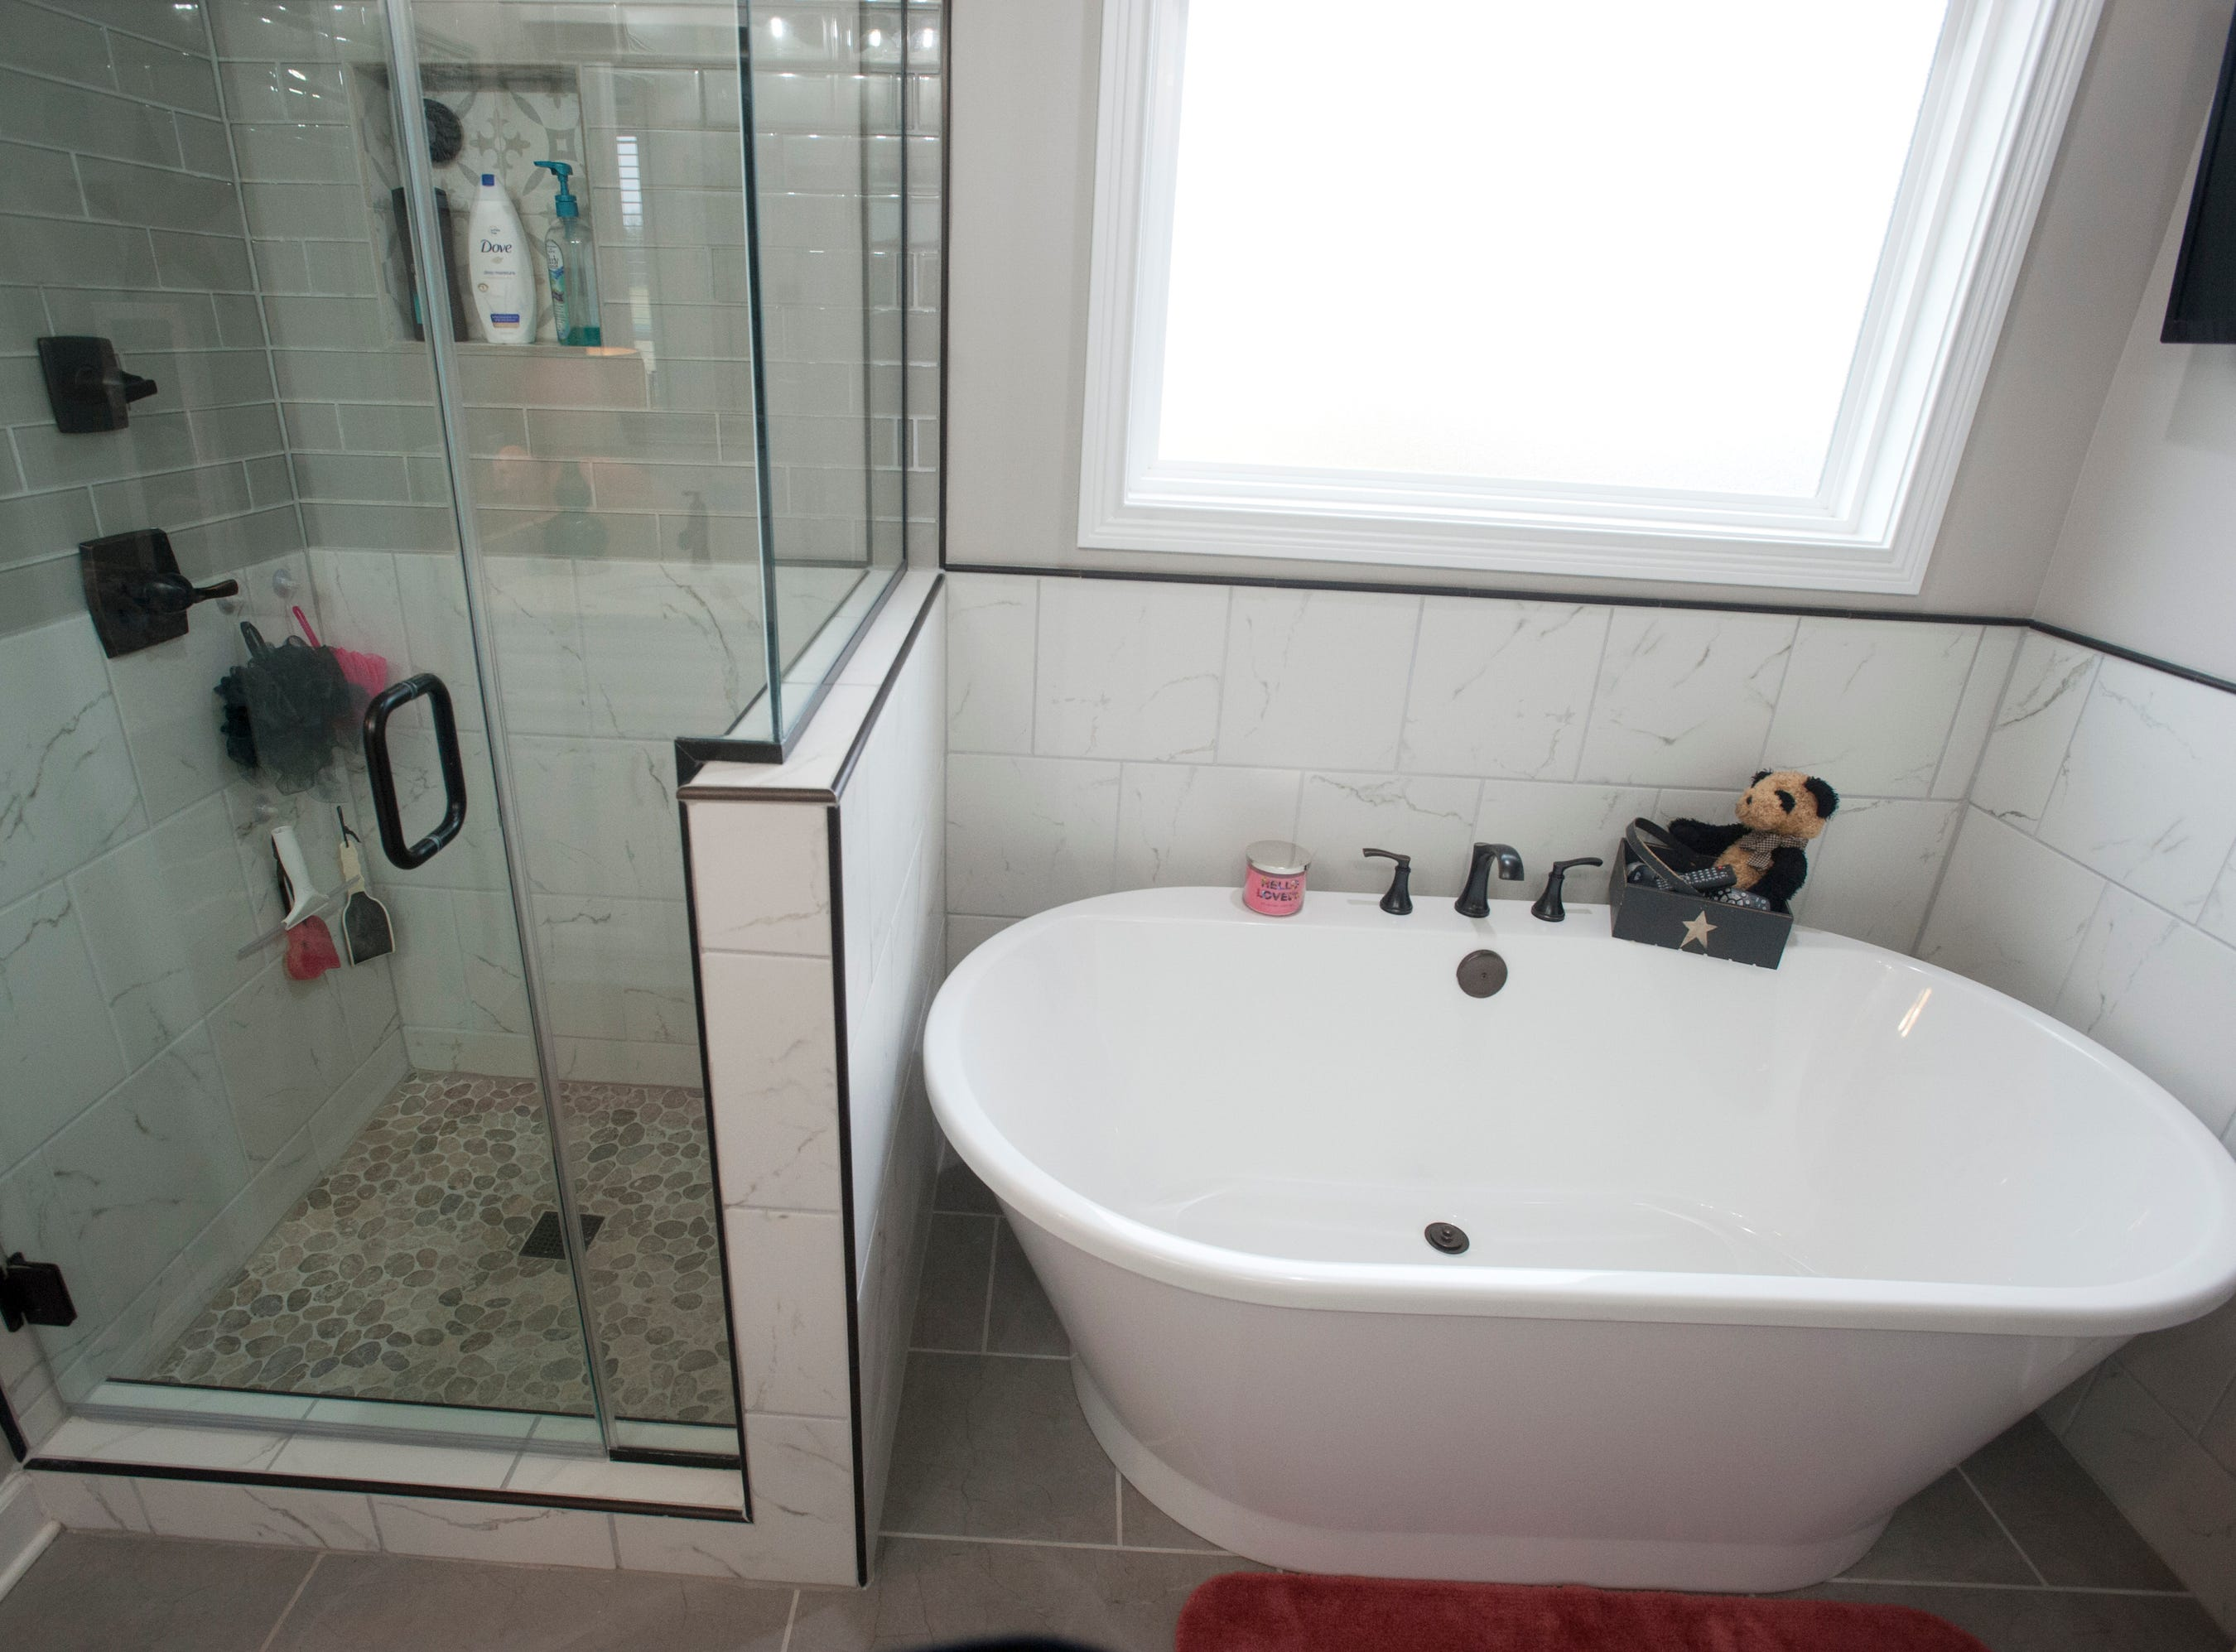 The master bathroom walk-in shower and soaking tub.